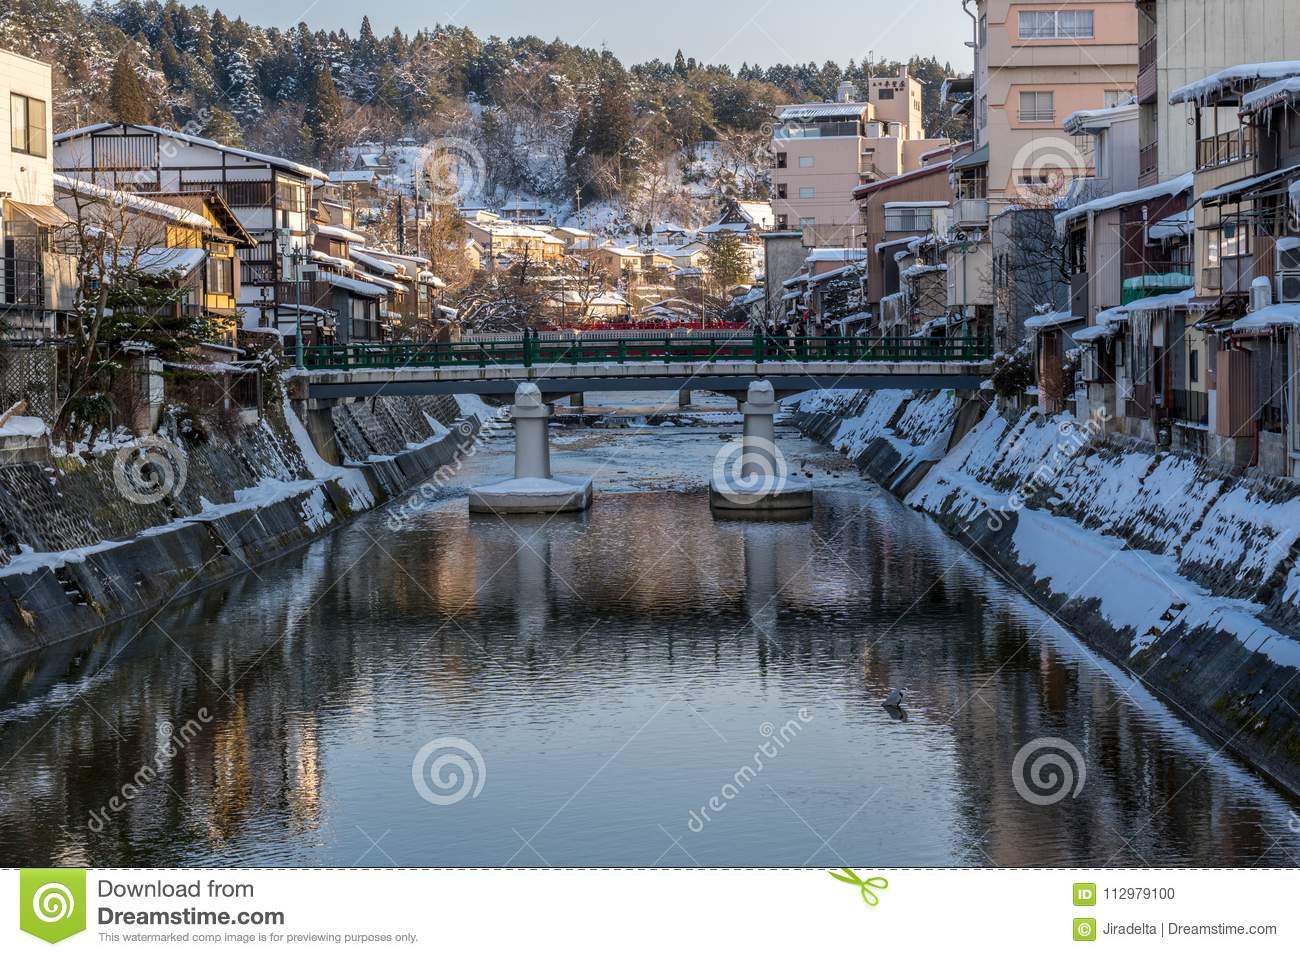 Miyagawanaka River of Takayama town in Winter